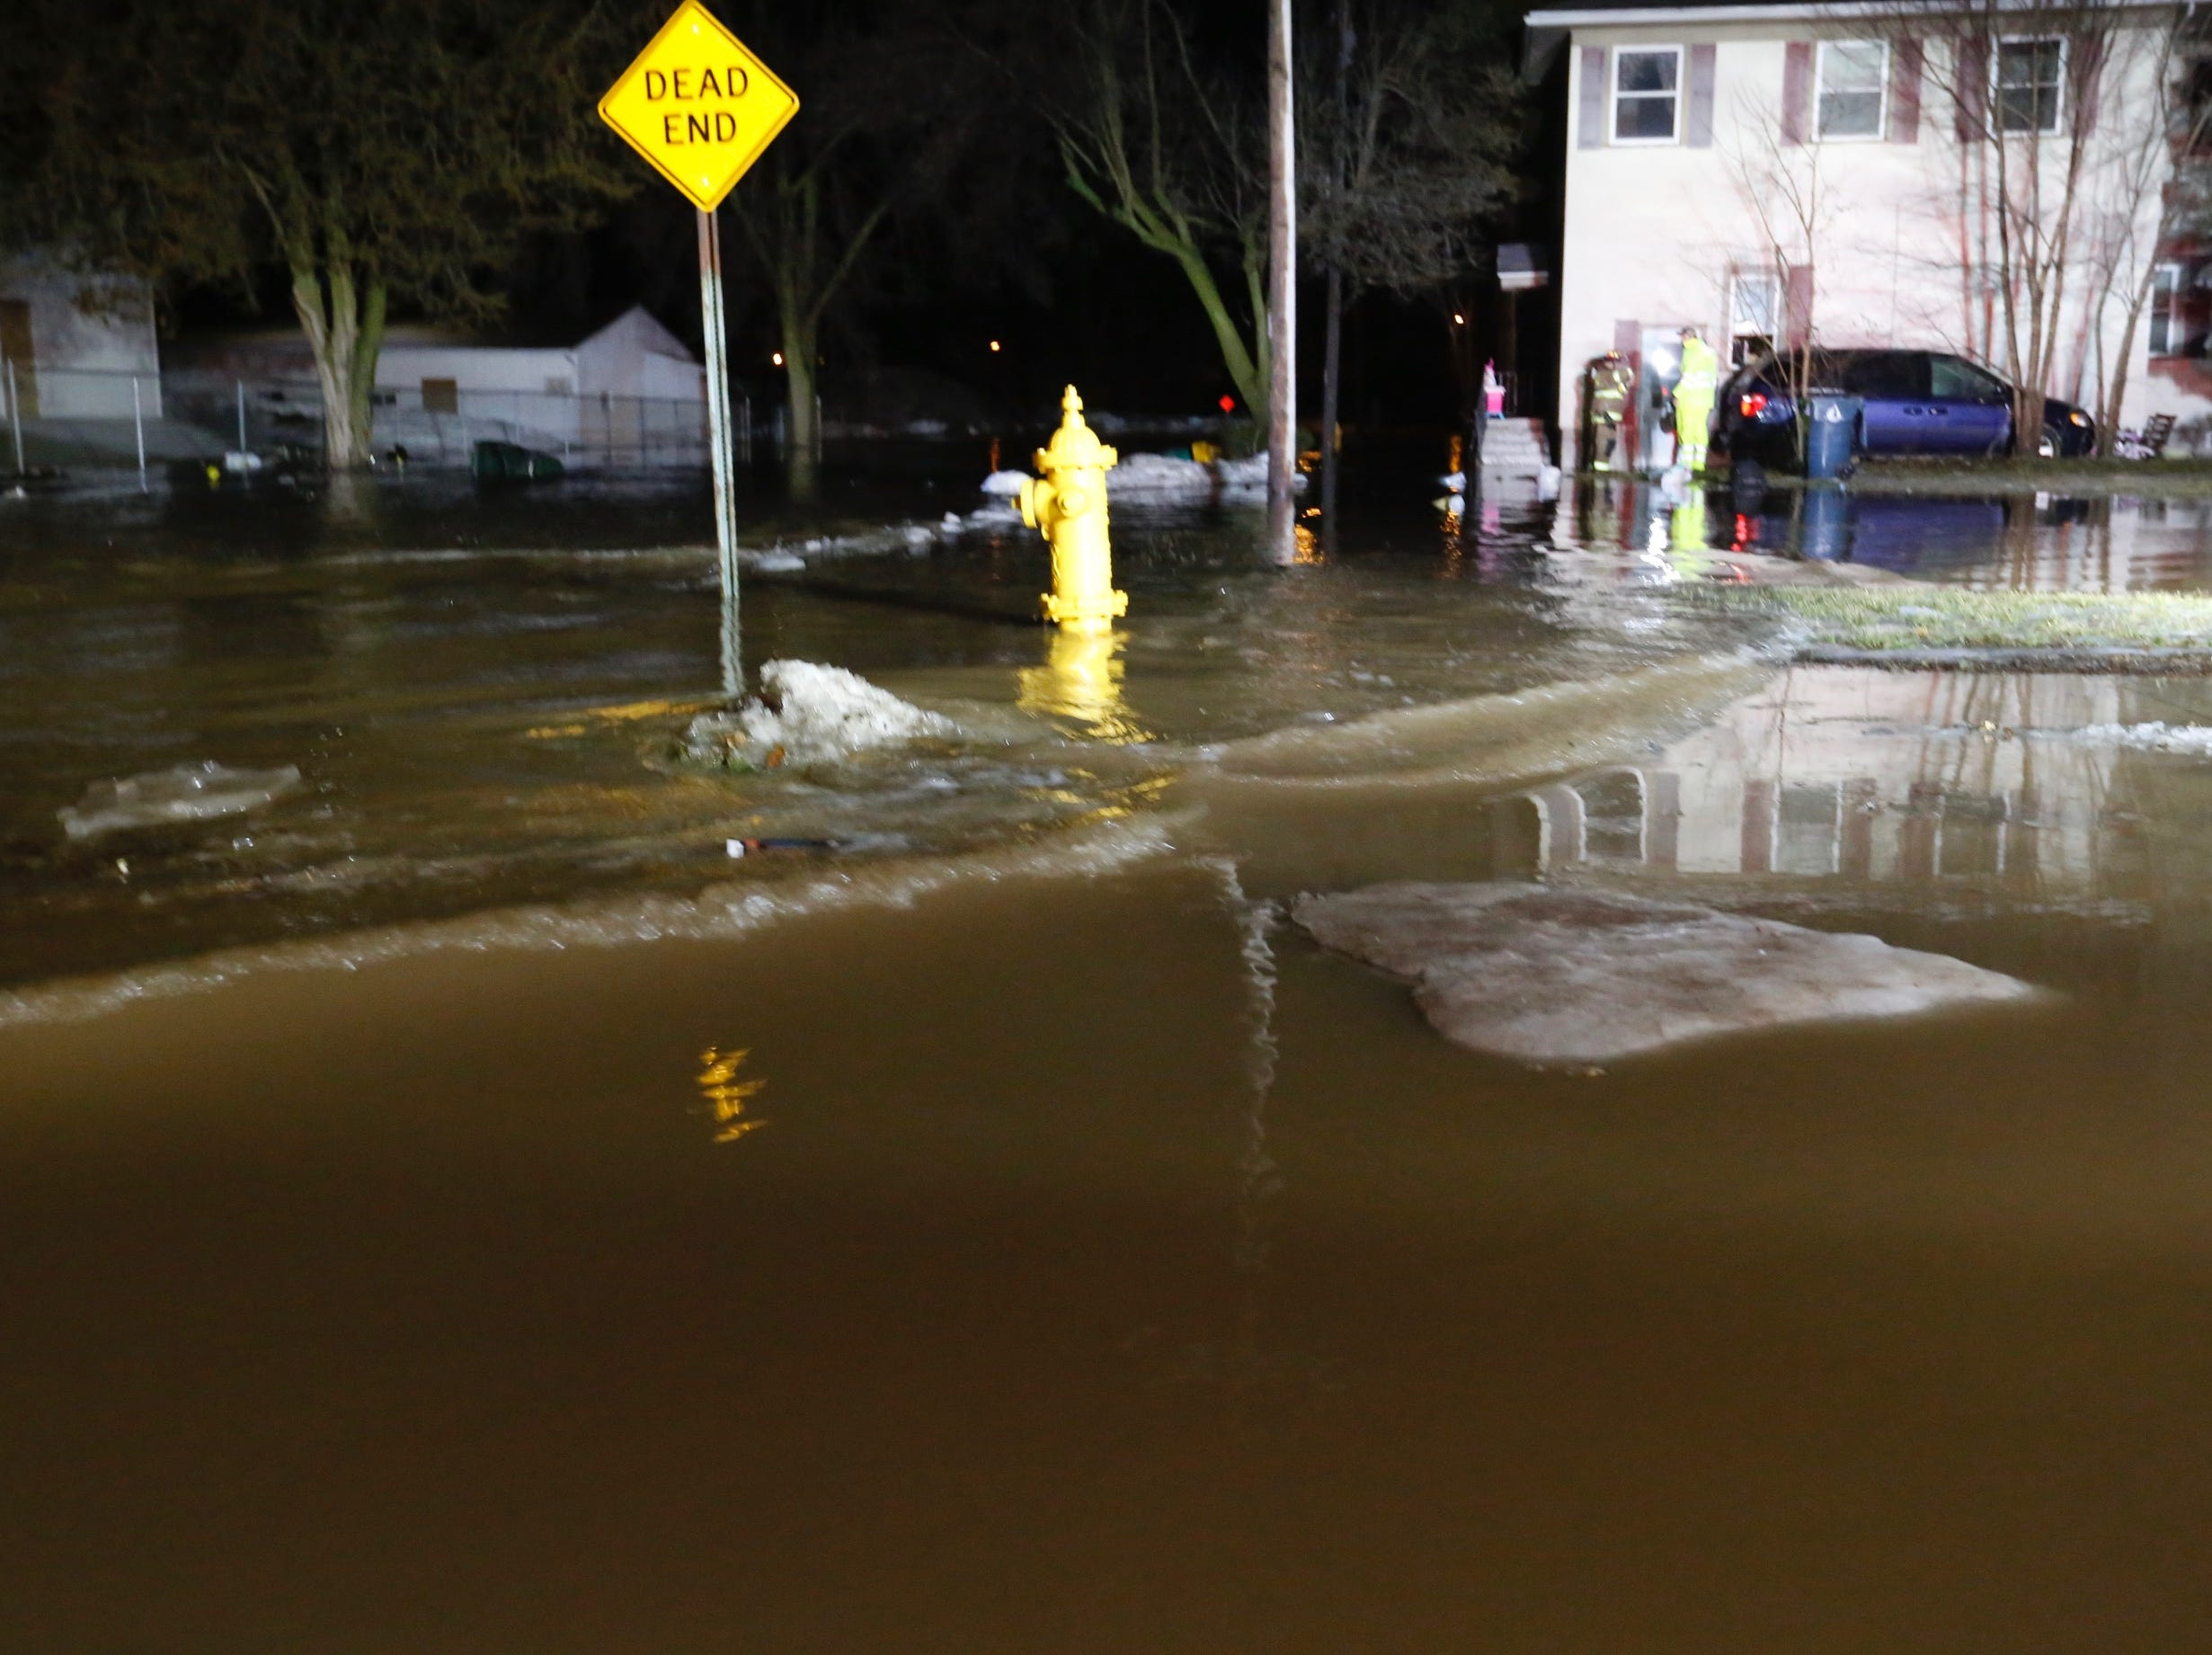 Firefighters assess flooding at a dead end on South Street